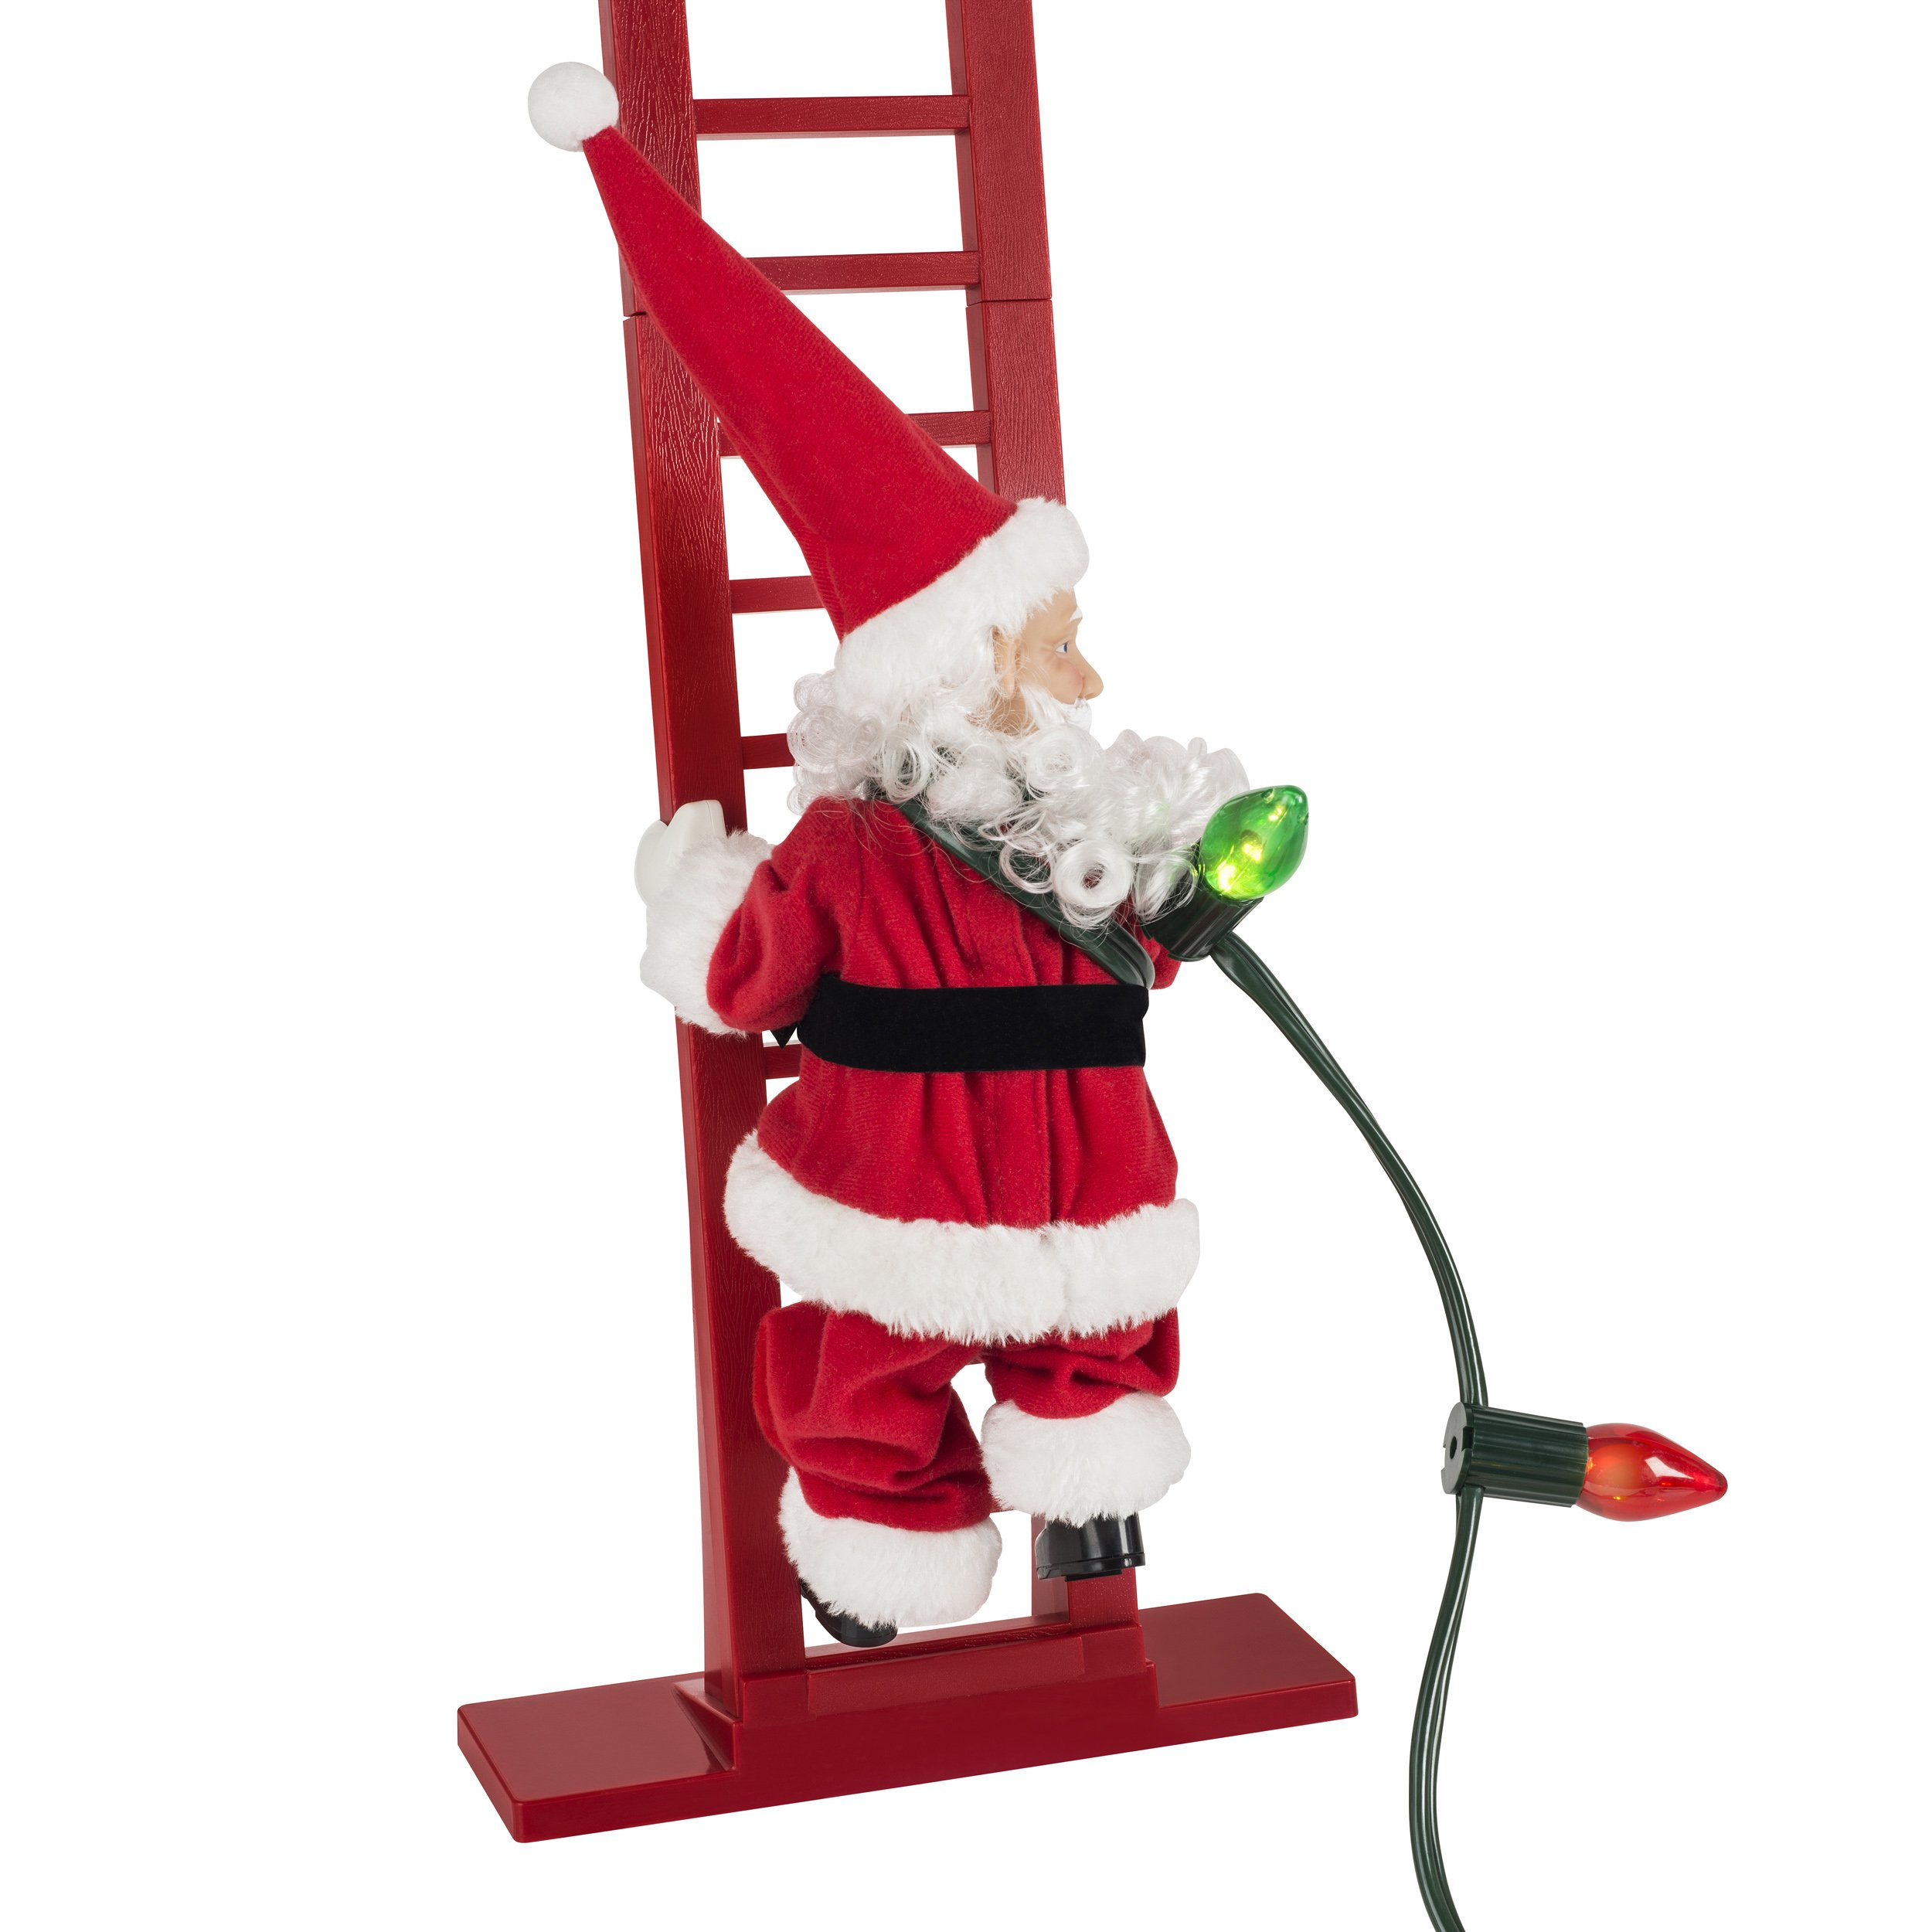 50%OFF-Mr. Christmas Super Climbing Santa Holiday Decor, Red